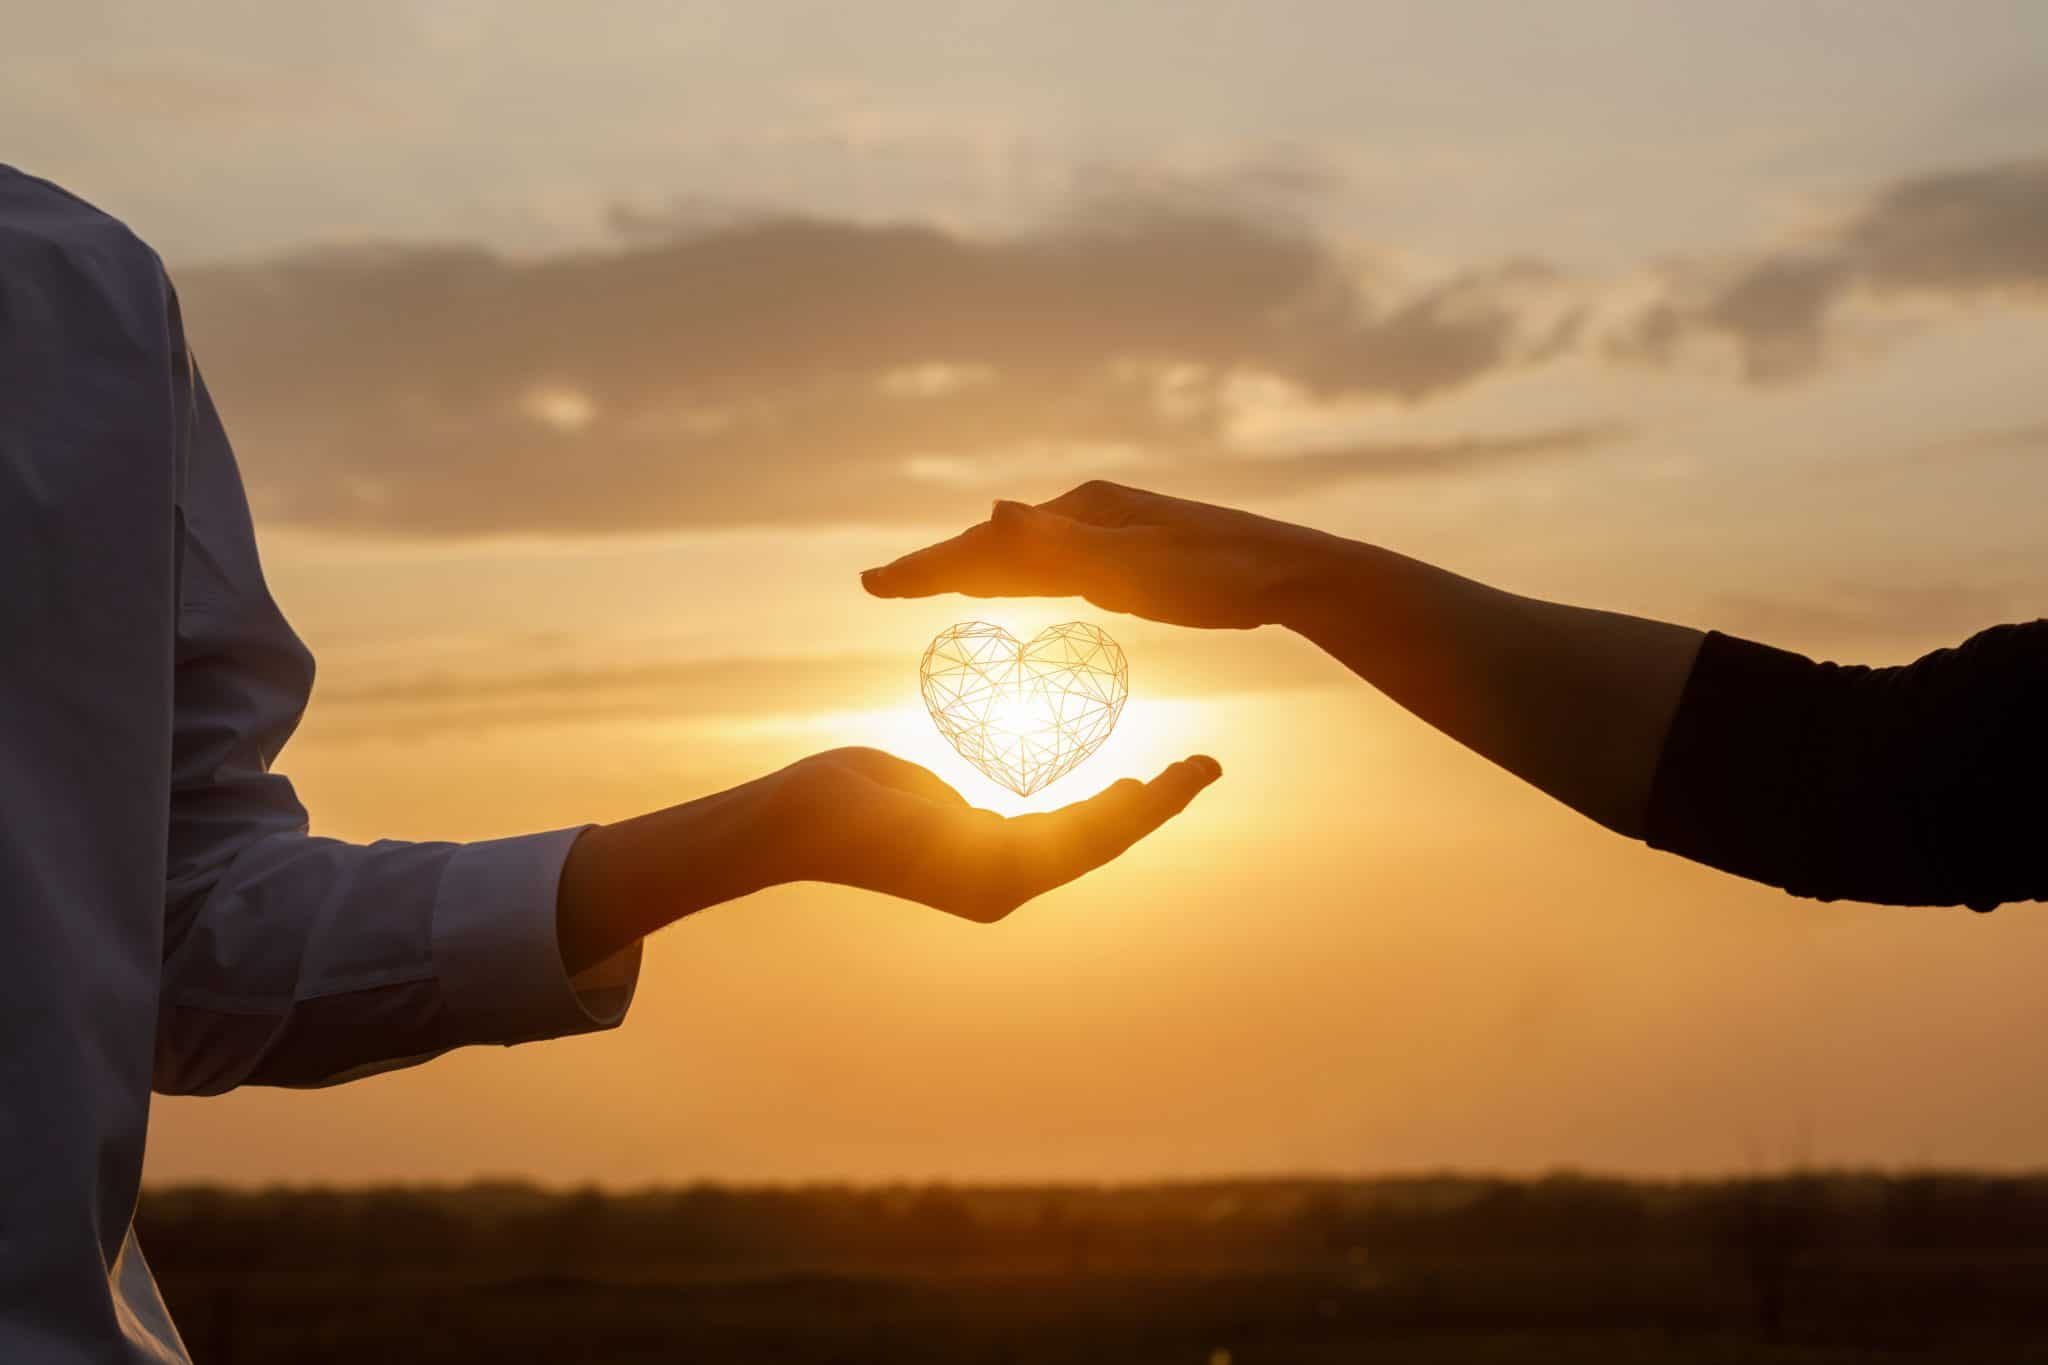 The concept of a love relationship between people. Hands interacts with a heart on a background of sunny sunset.